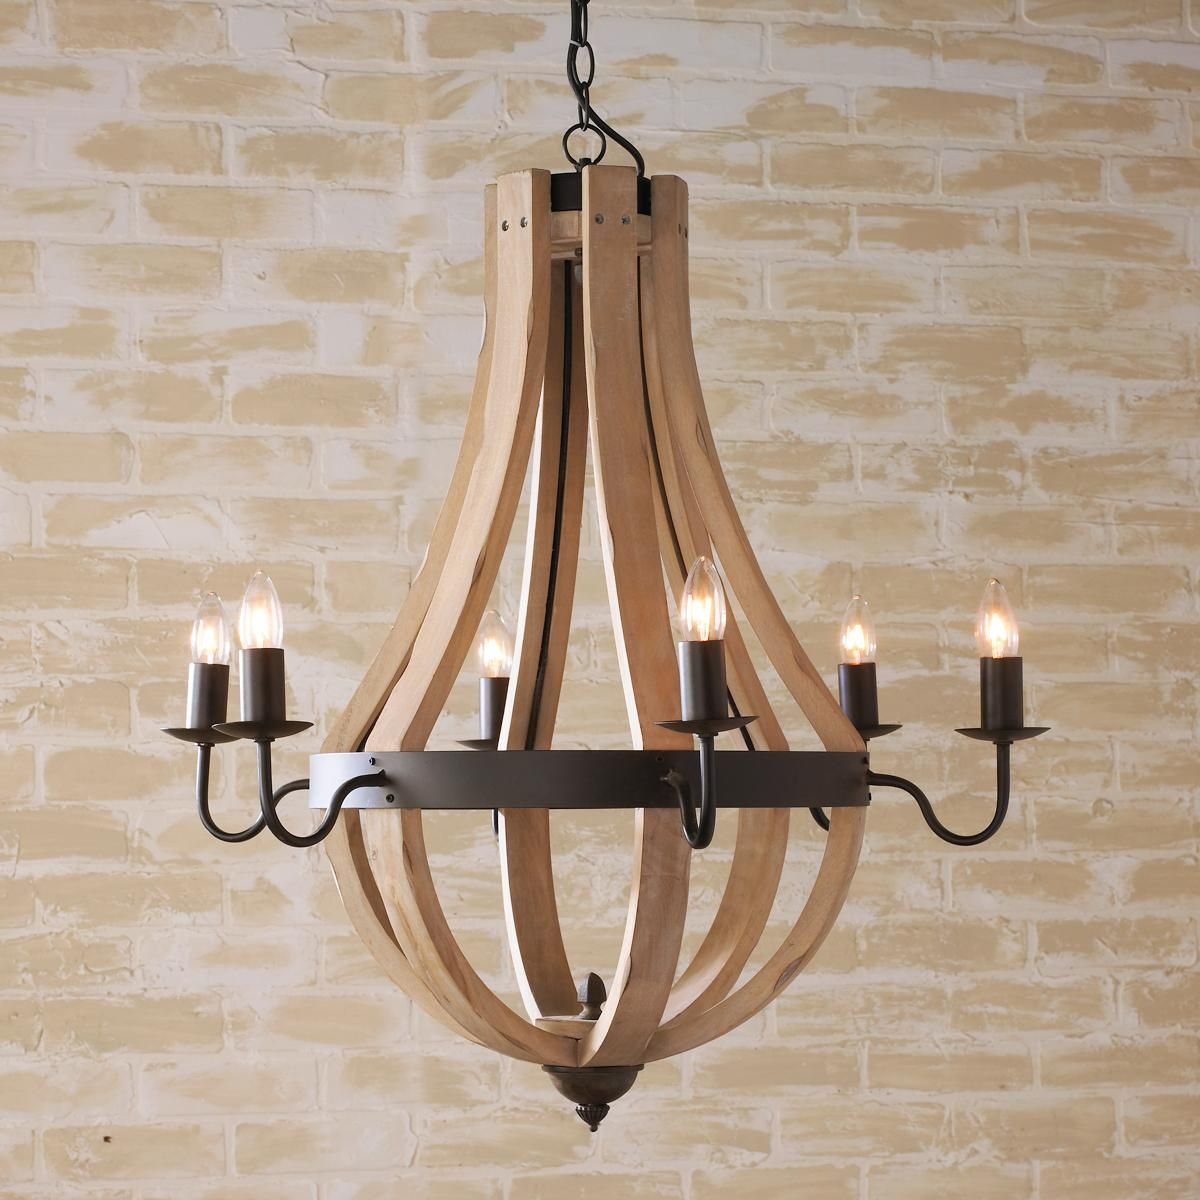 Wooden Wine Barrel Stave Chandelier Wine Barrel